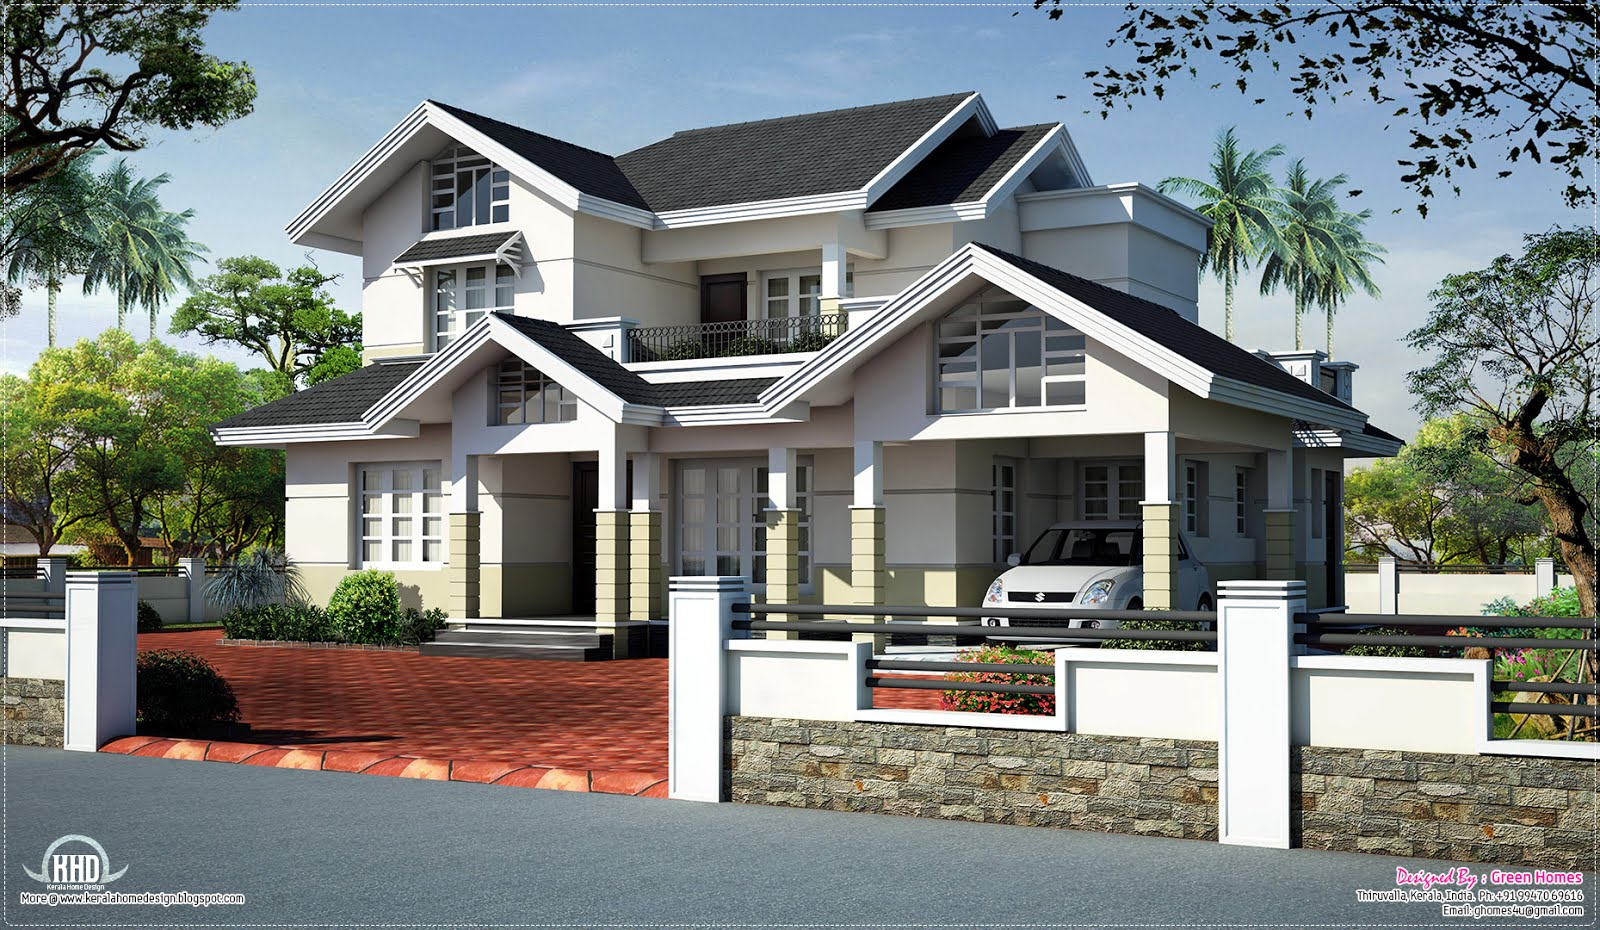 Sloped roof house elevation design house design plans for Green home designs